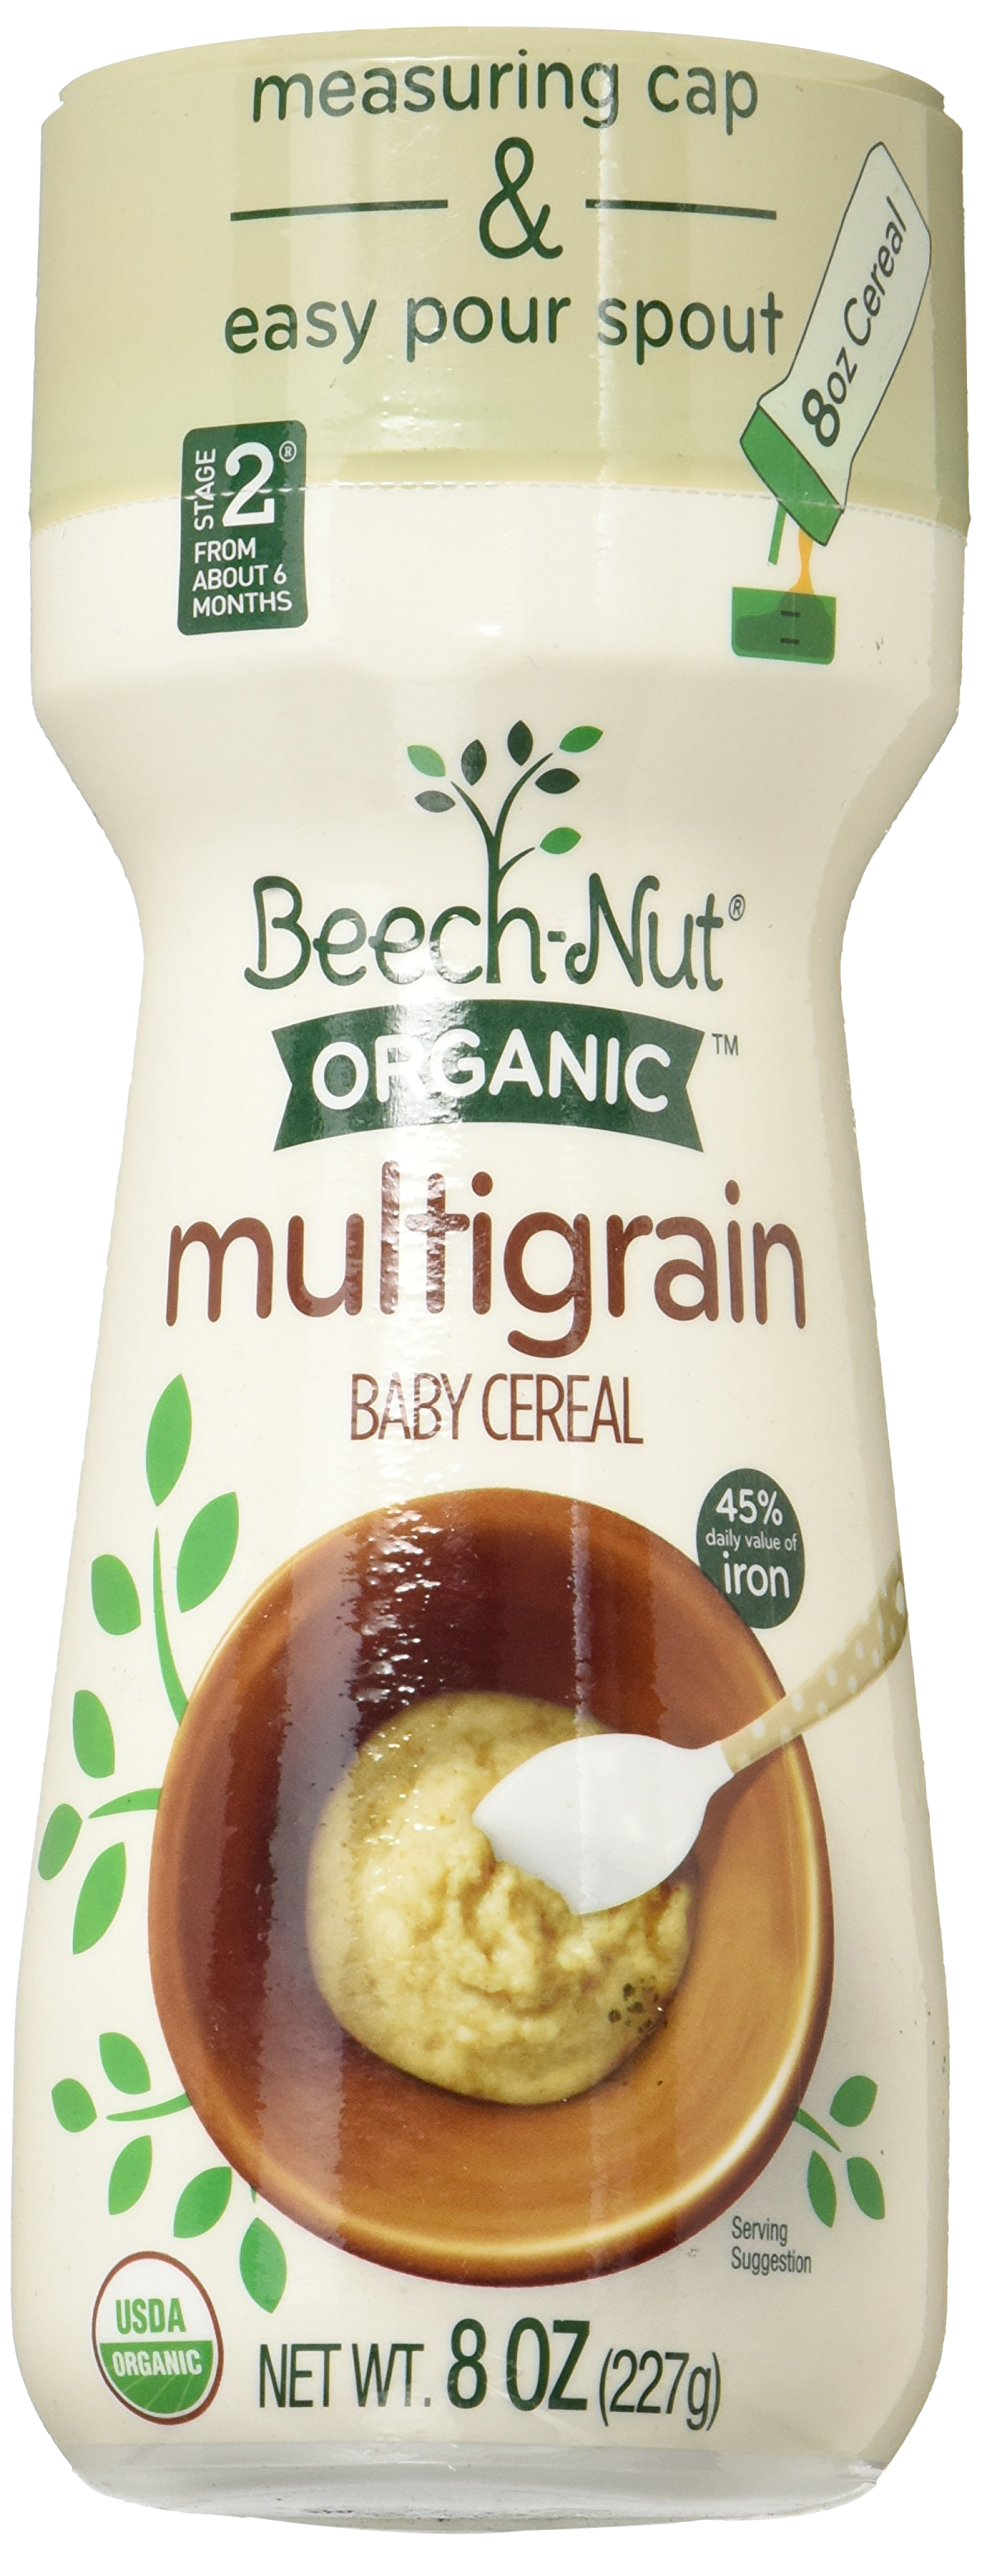 Beech-Nut Organic Multigrain Baby Cereal Canister, 8 Ounce by Beech-Nut